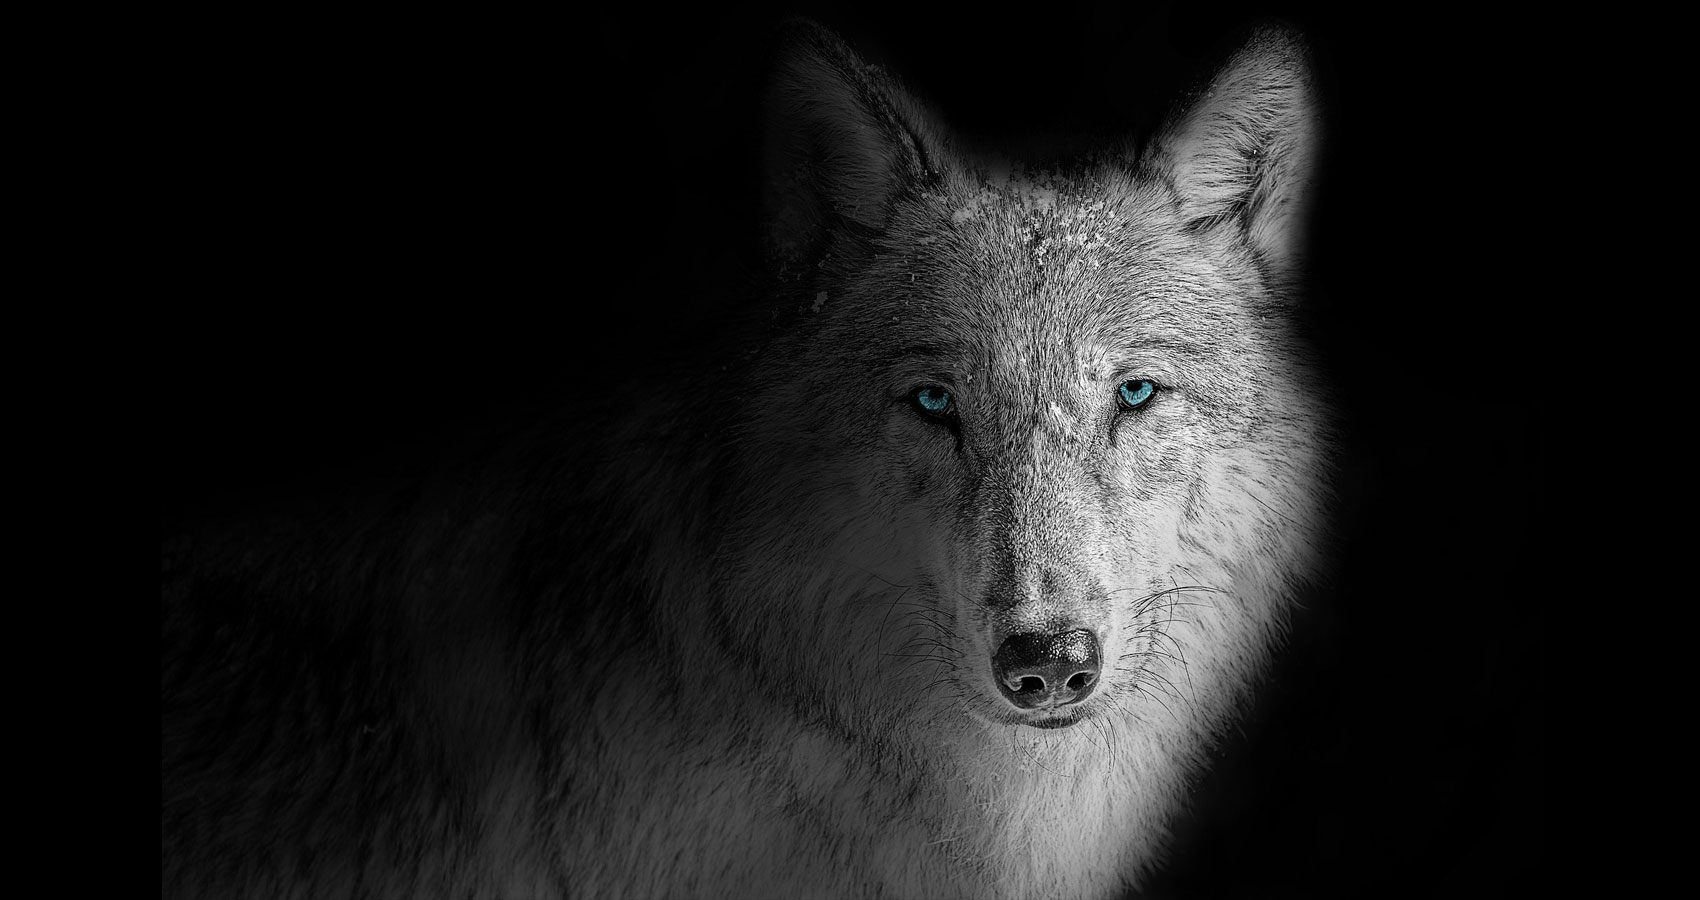 Shadow Wolf, a poem written by James F. Cunningham at Spillwords.com